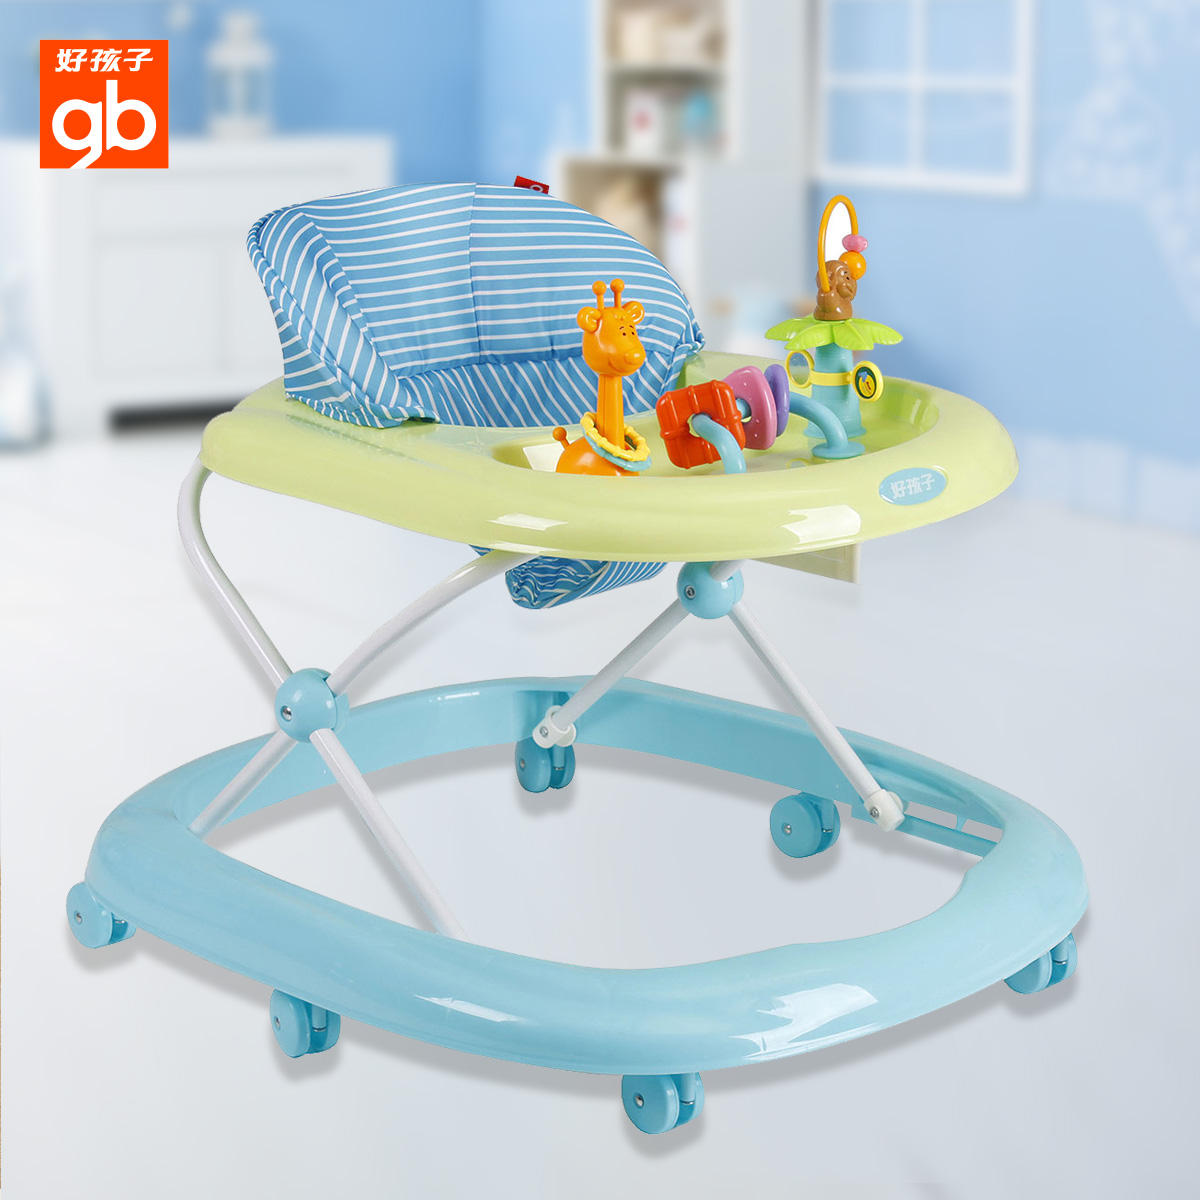 World famous brand gb baby multifunctional Walker XB109E cloth cover removable Free shipping(China (Mainland))